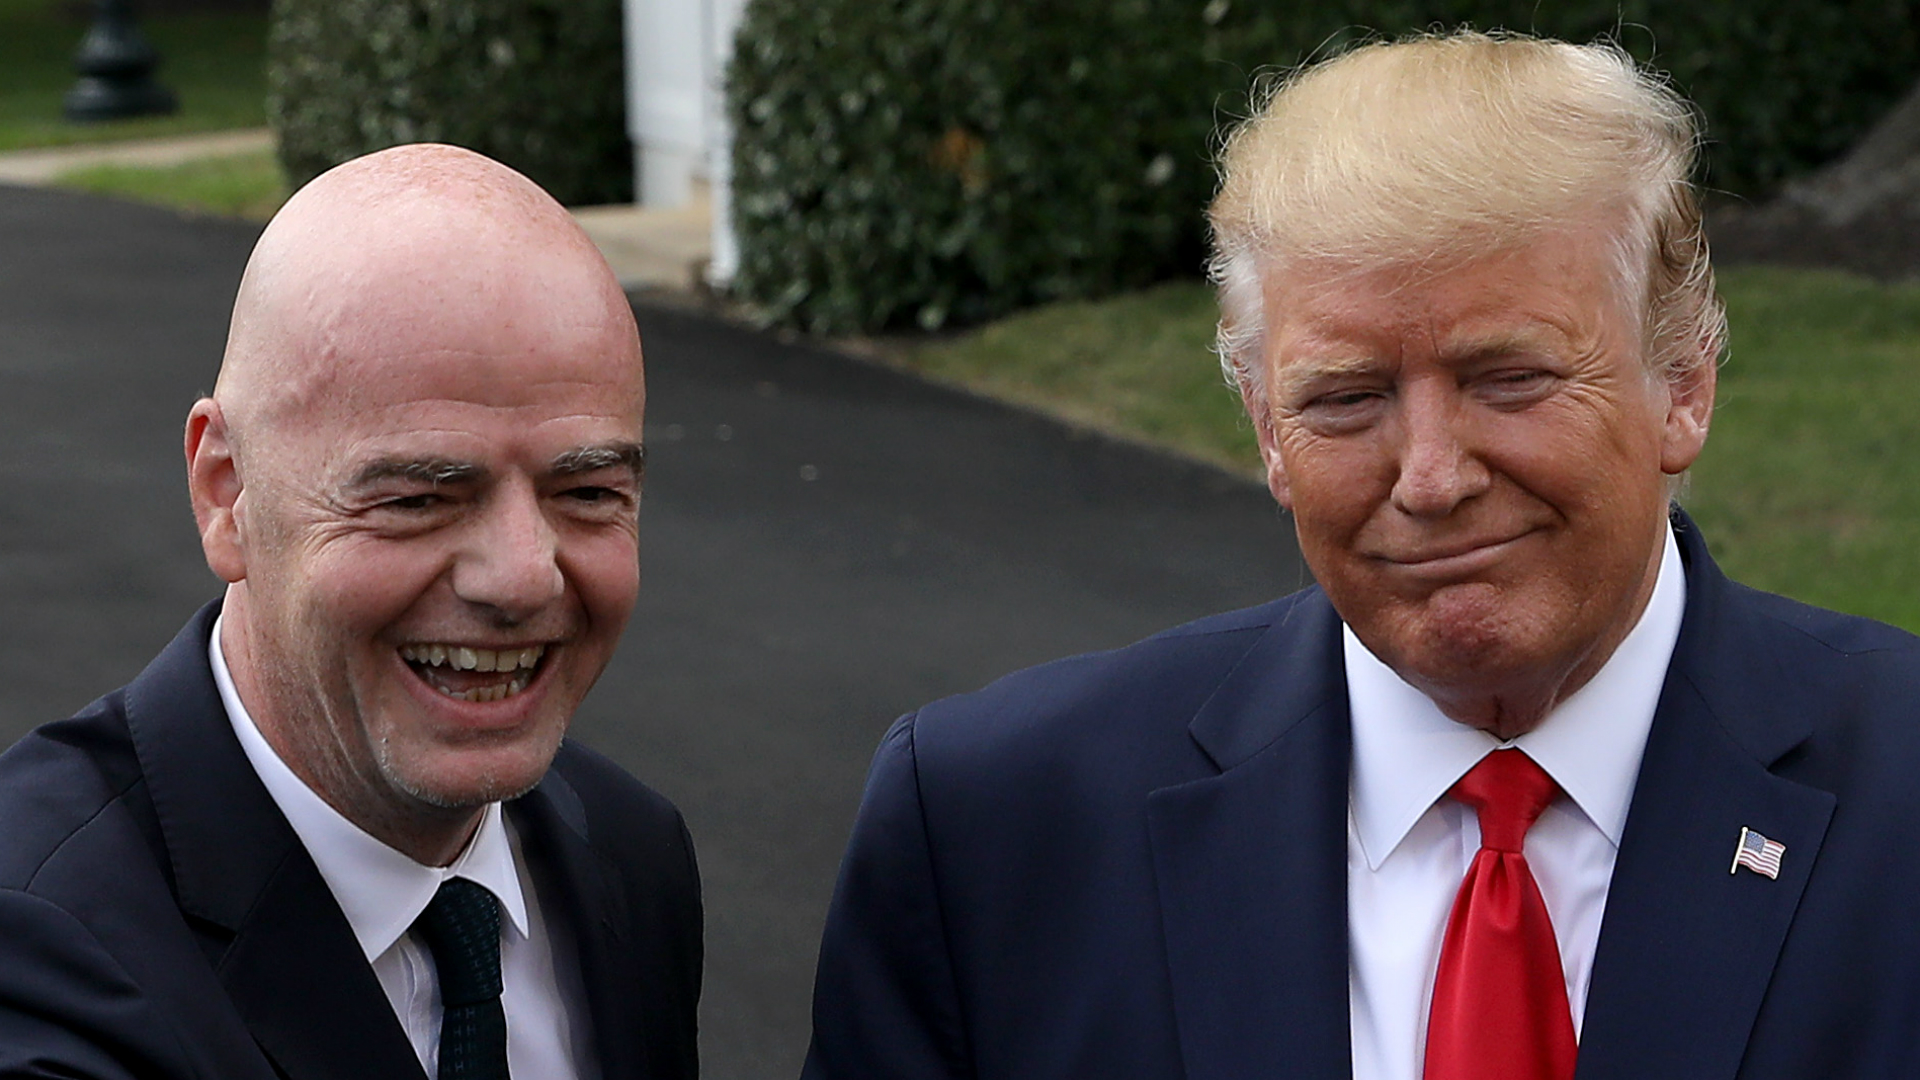 President Trump in talks with FIFA chief on how to make women's football 'more equitable'